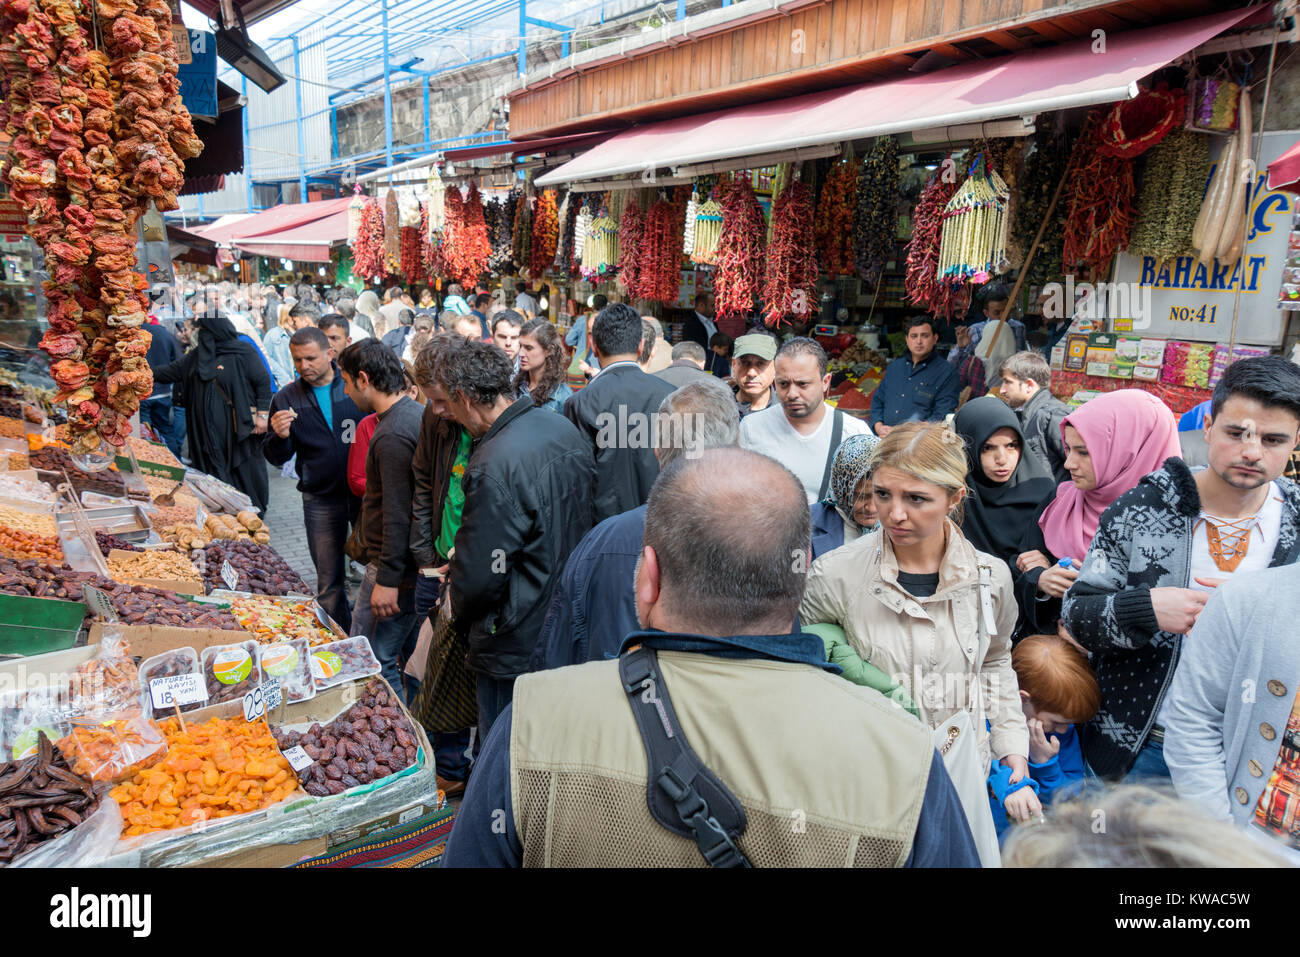 APRIL 27,2014 ISTANBUL TURKEY.Tahtakale is the one of the big public bazaars in Istanbul province. - Stock Photo